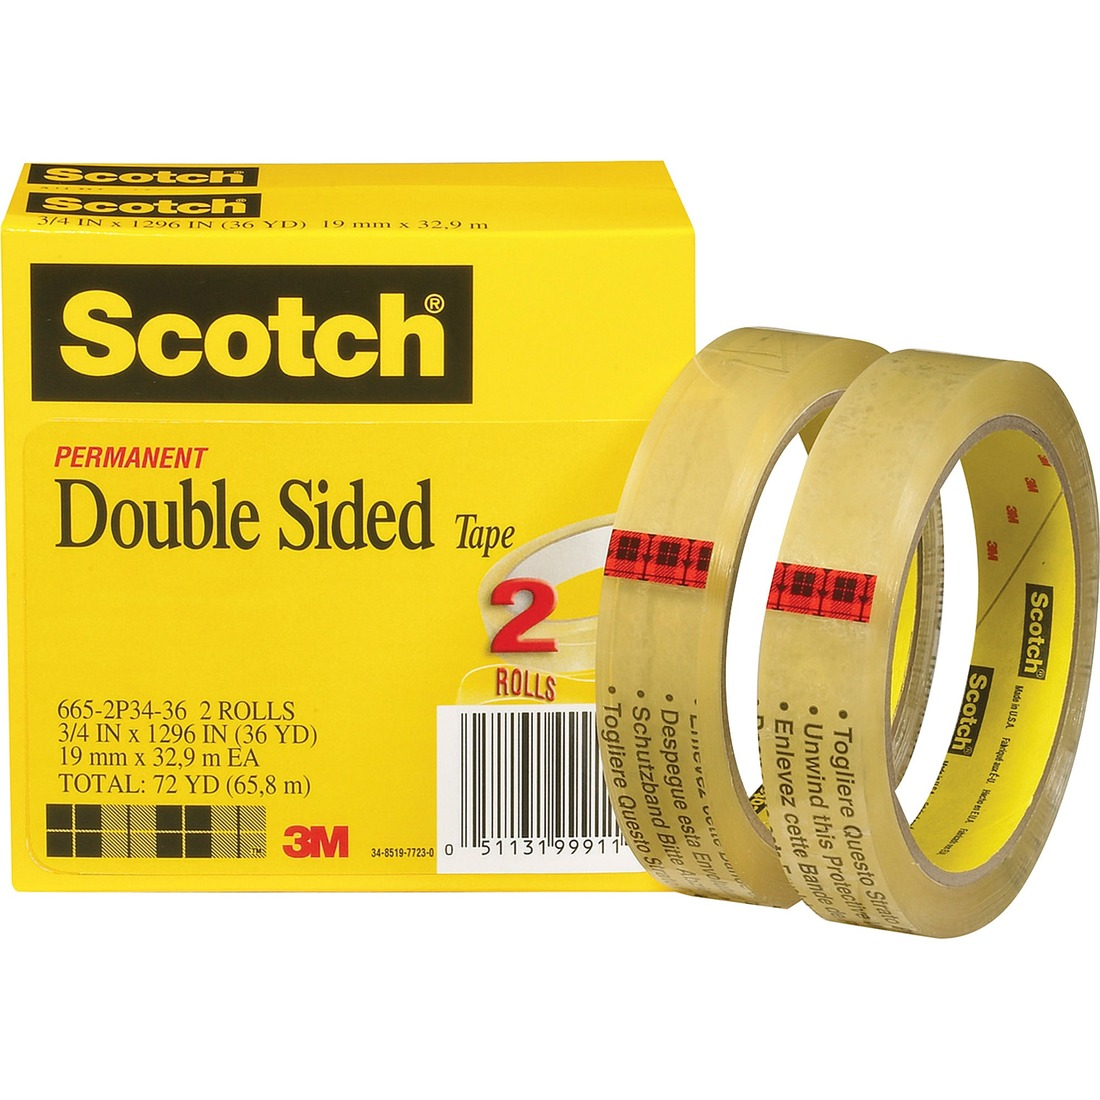 scotch permanent double sided tape 3 4 x 1296. Black Bedroom Furniture Sets. Home Design Ideas